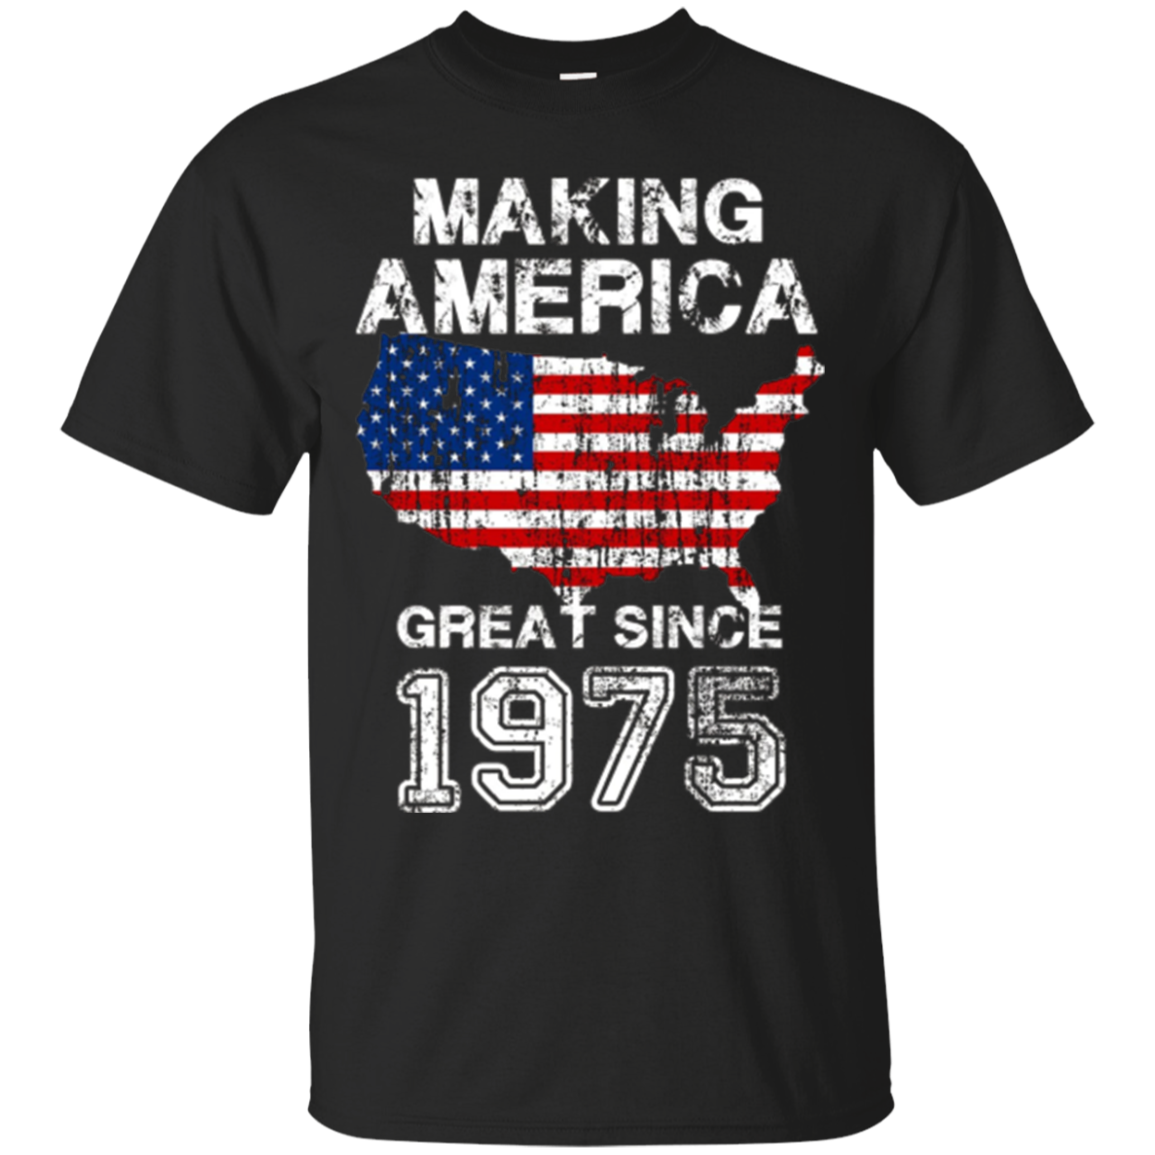 42nd Birthday Gift Shirt for Conservative Man or Woman